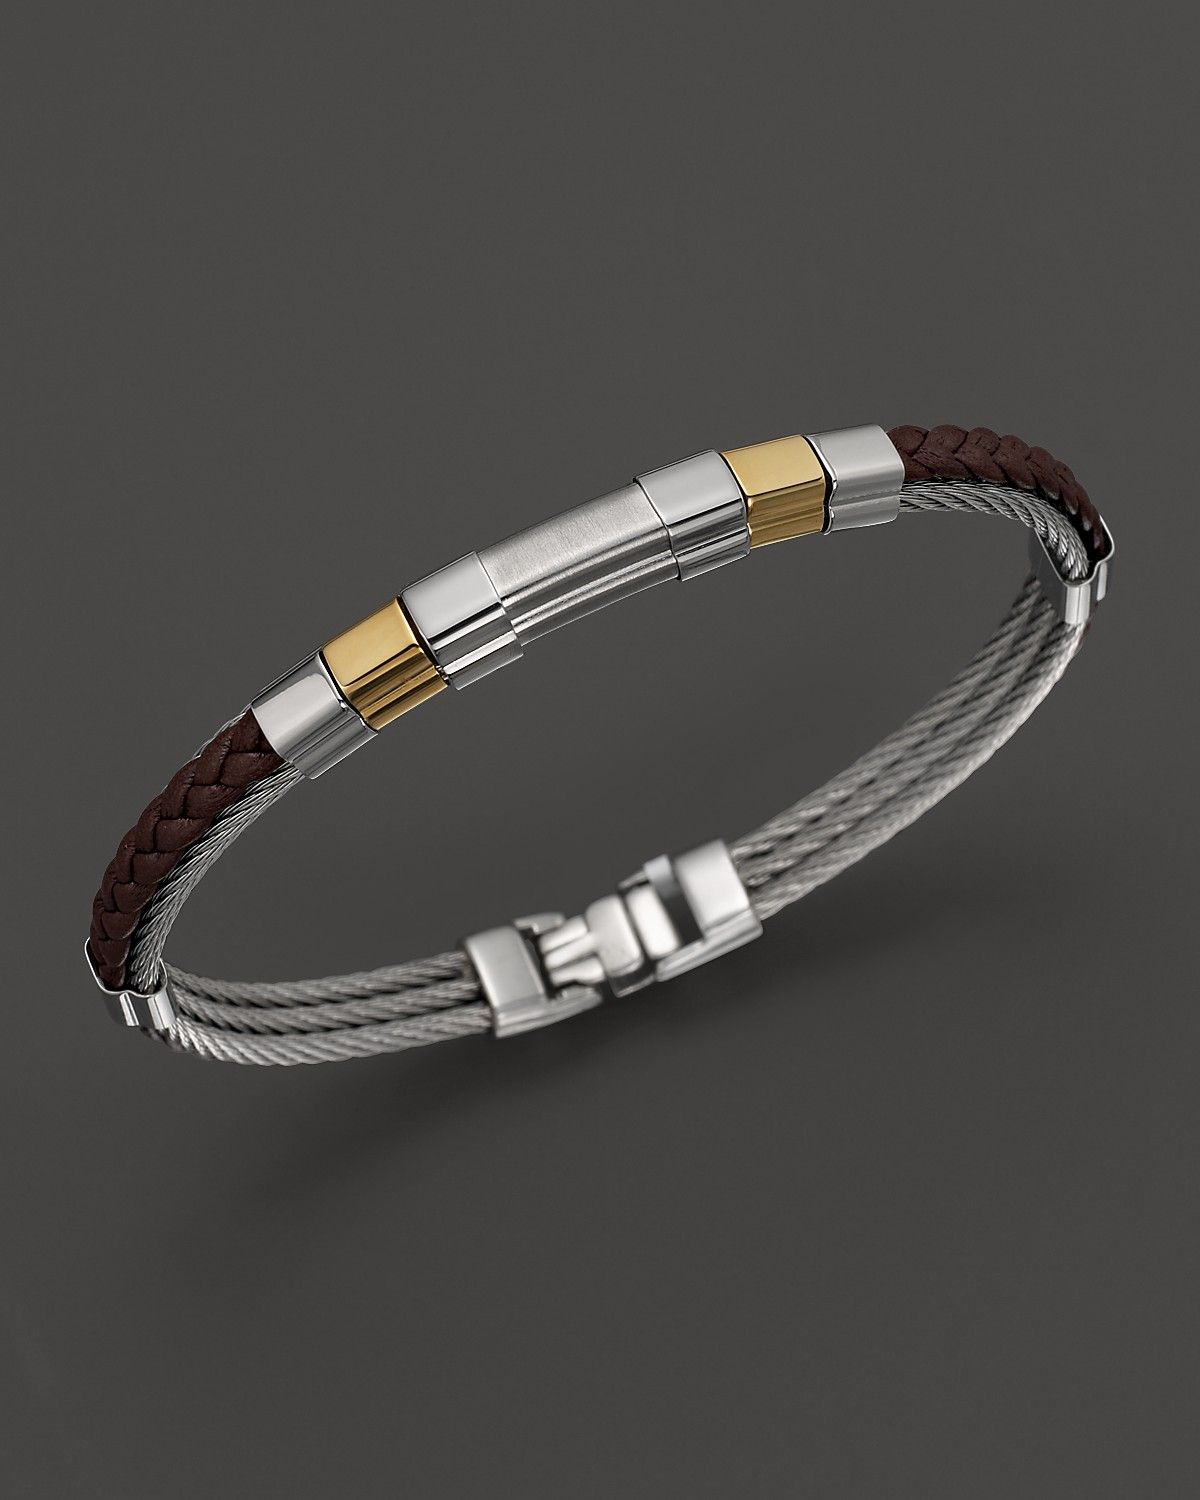 782c80c944fa4 Pin by Vince Erwin Tan on Accessories | Bangles, Brown leather ...